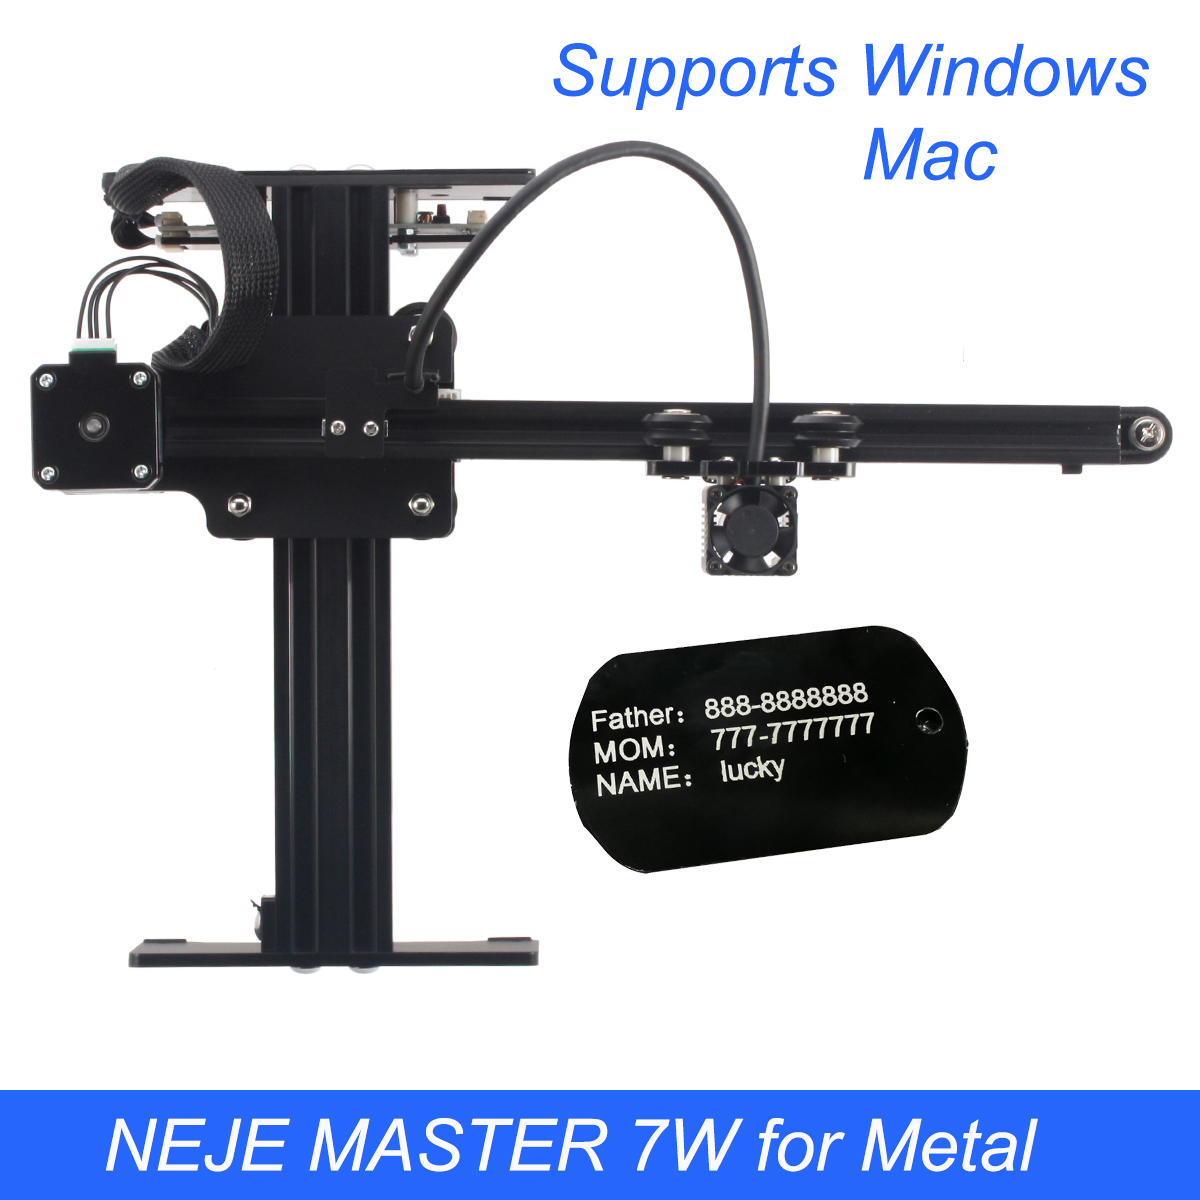 NEJE MASTER 3500mW /7W Laser Engraving Machine DIY Mini CNC Cutting Wood Router Desktop Engraver For Metal/Wood/Plastics